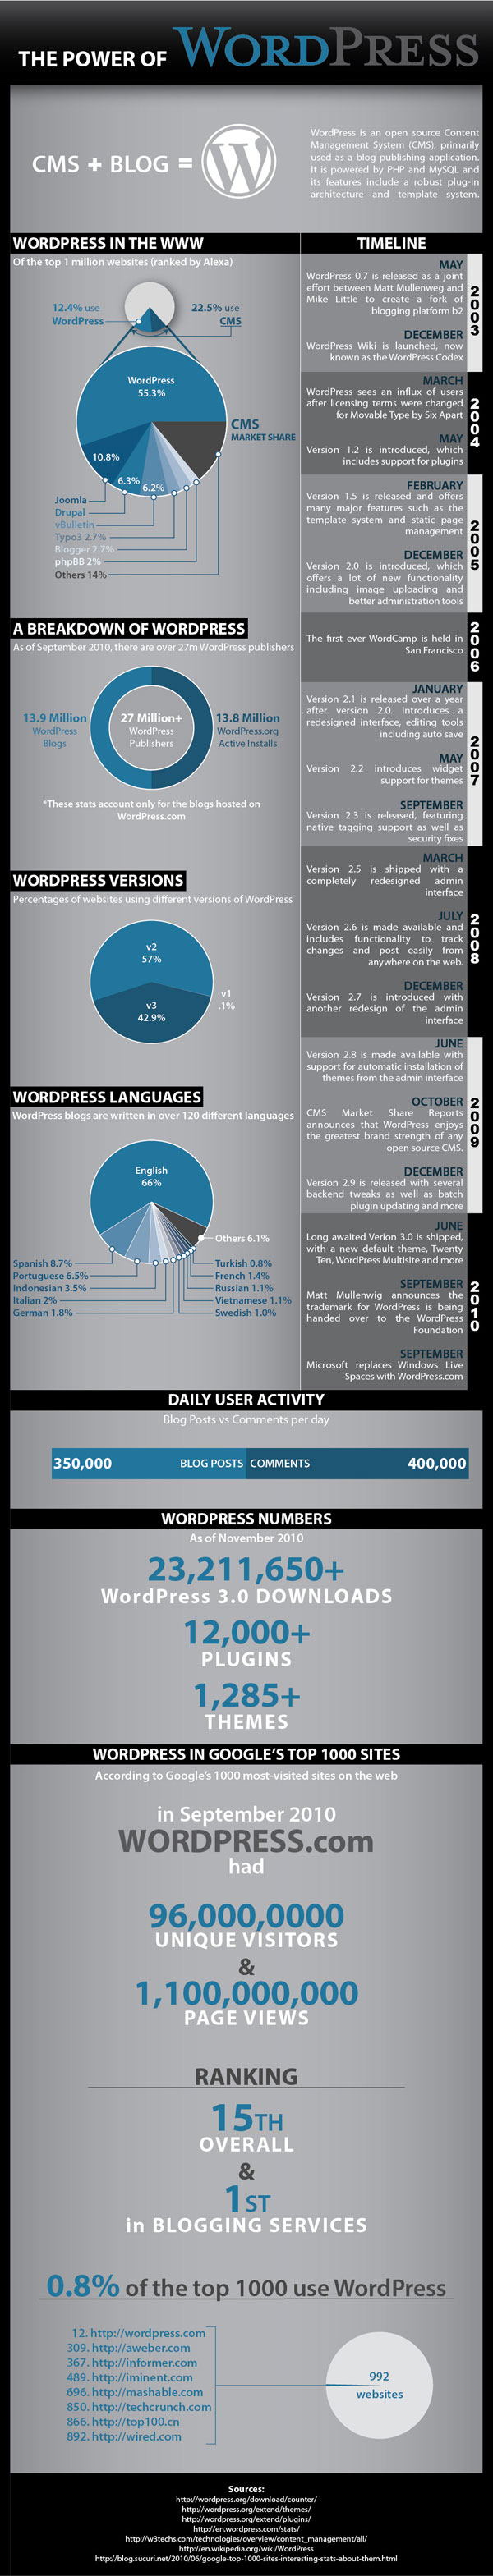 wordpress-info-graphic